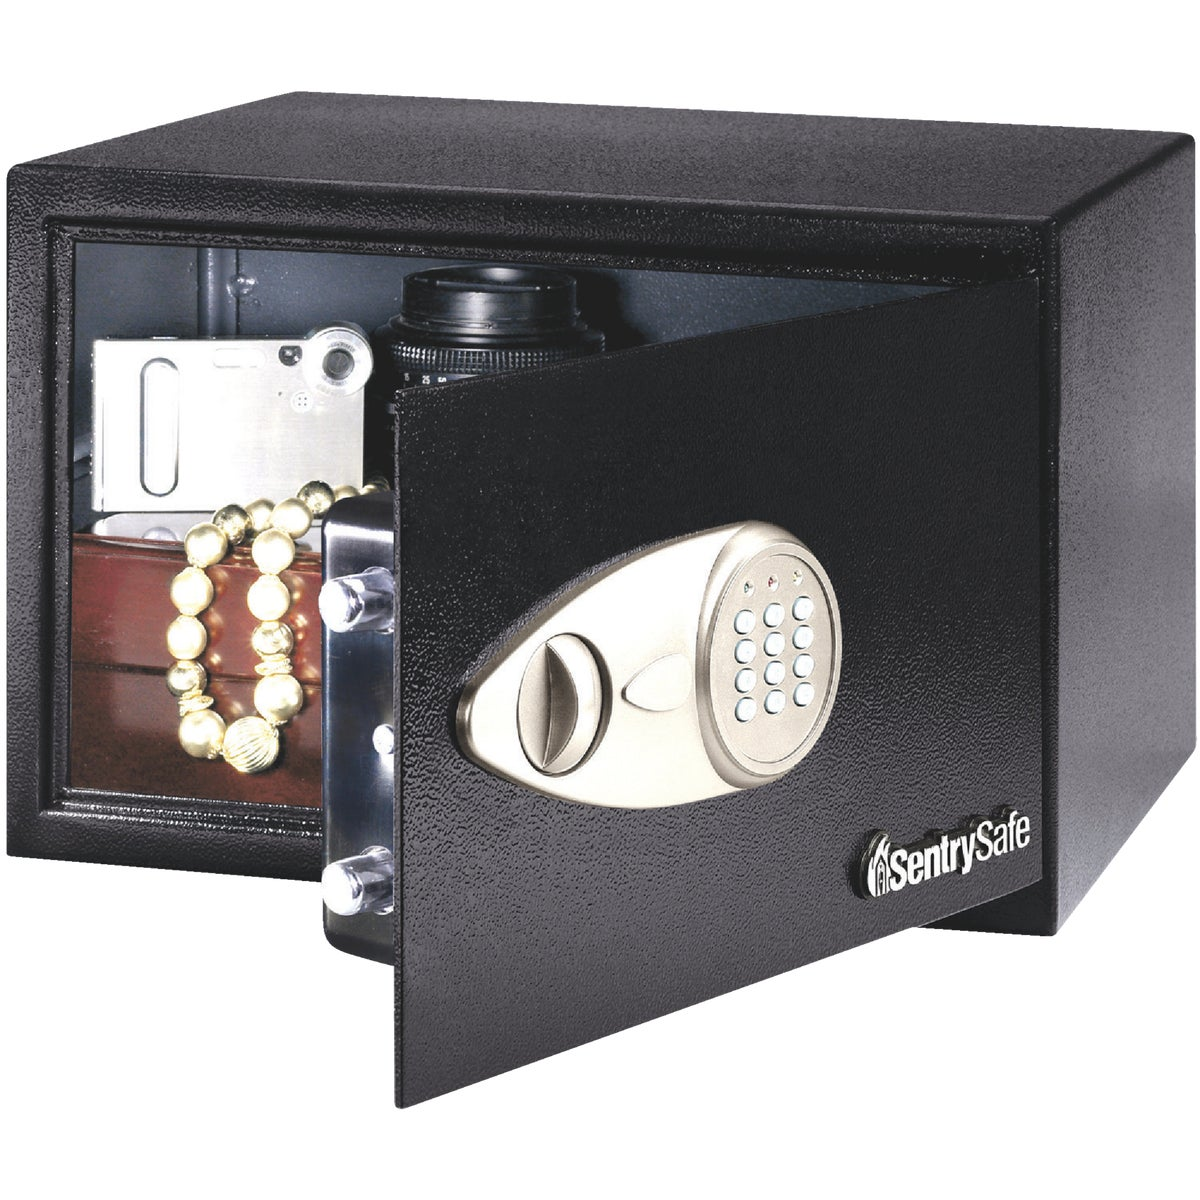 STEEL SECURITY SAFE - X055 by Sentry Safes